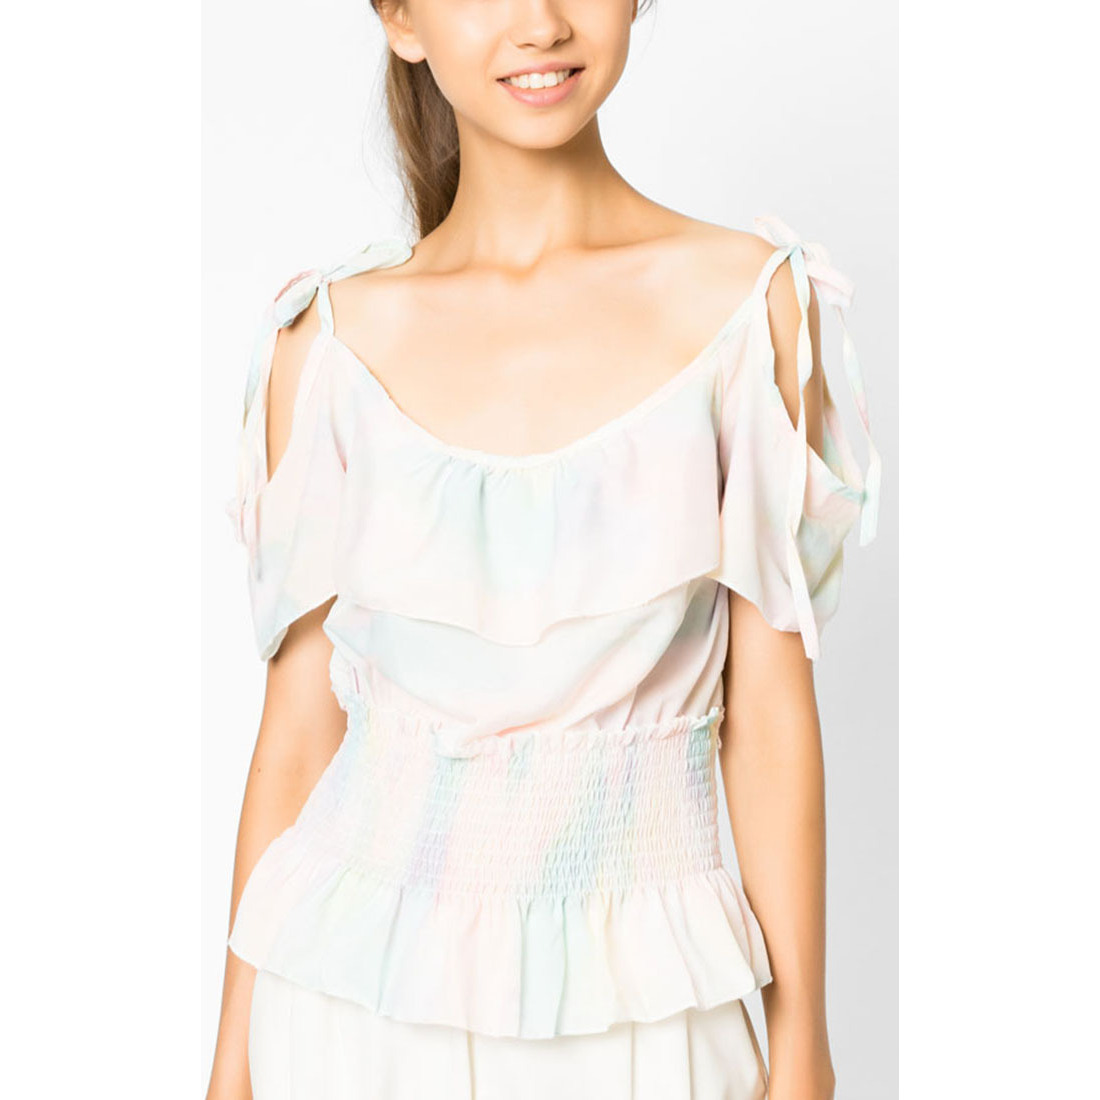 8b523350936524 Buy Online MirrorDress-Pastel Rainbow Cold Shoulder Blouse (Multi) from USA  - Zifiti.com - Page